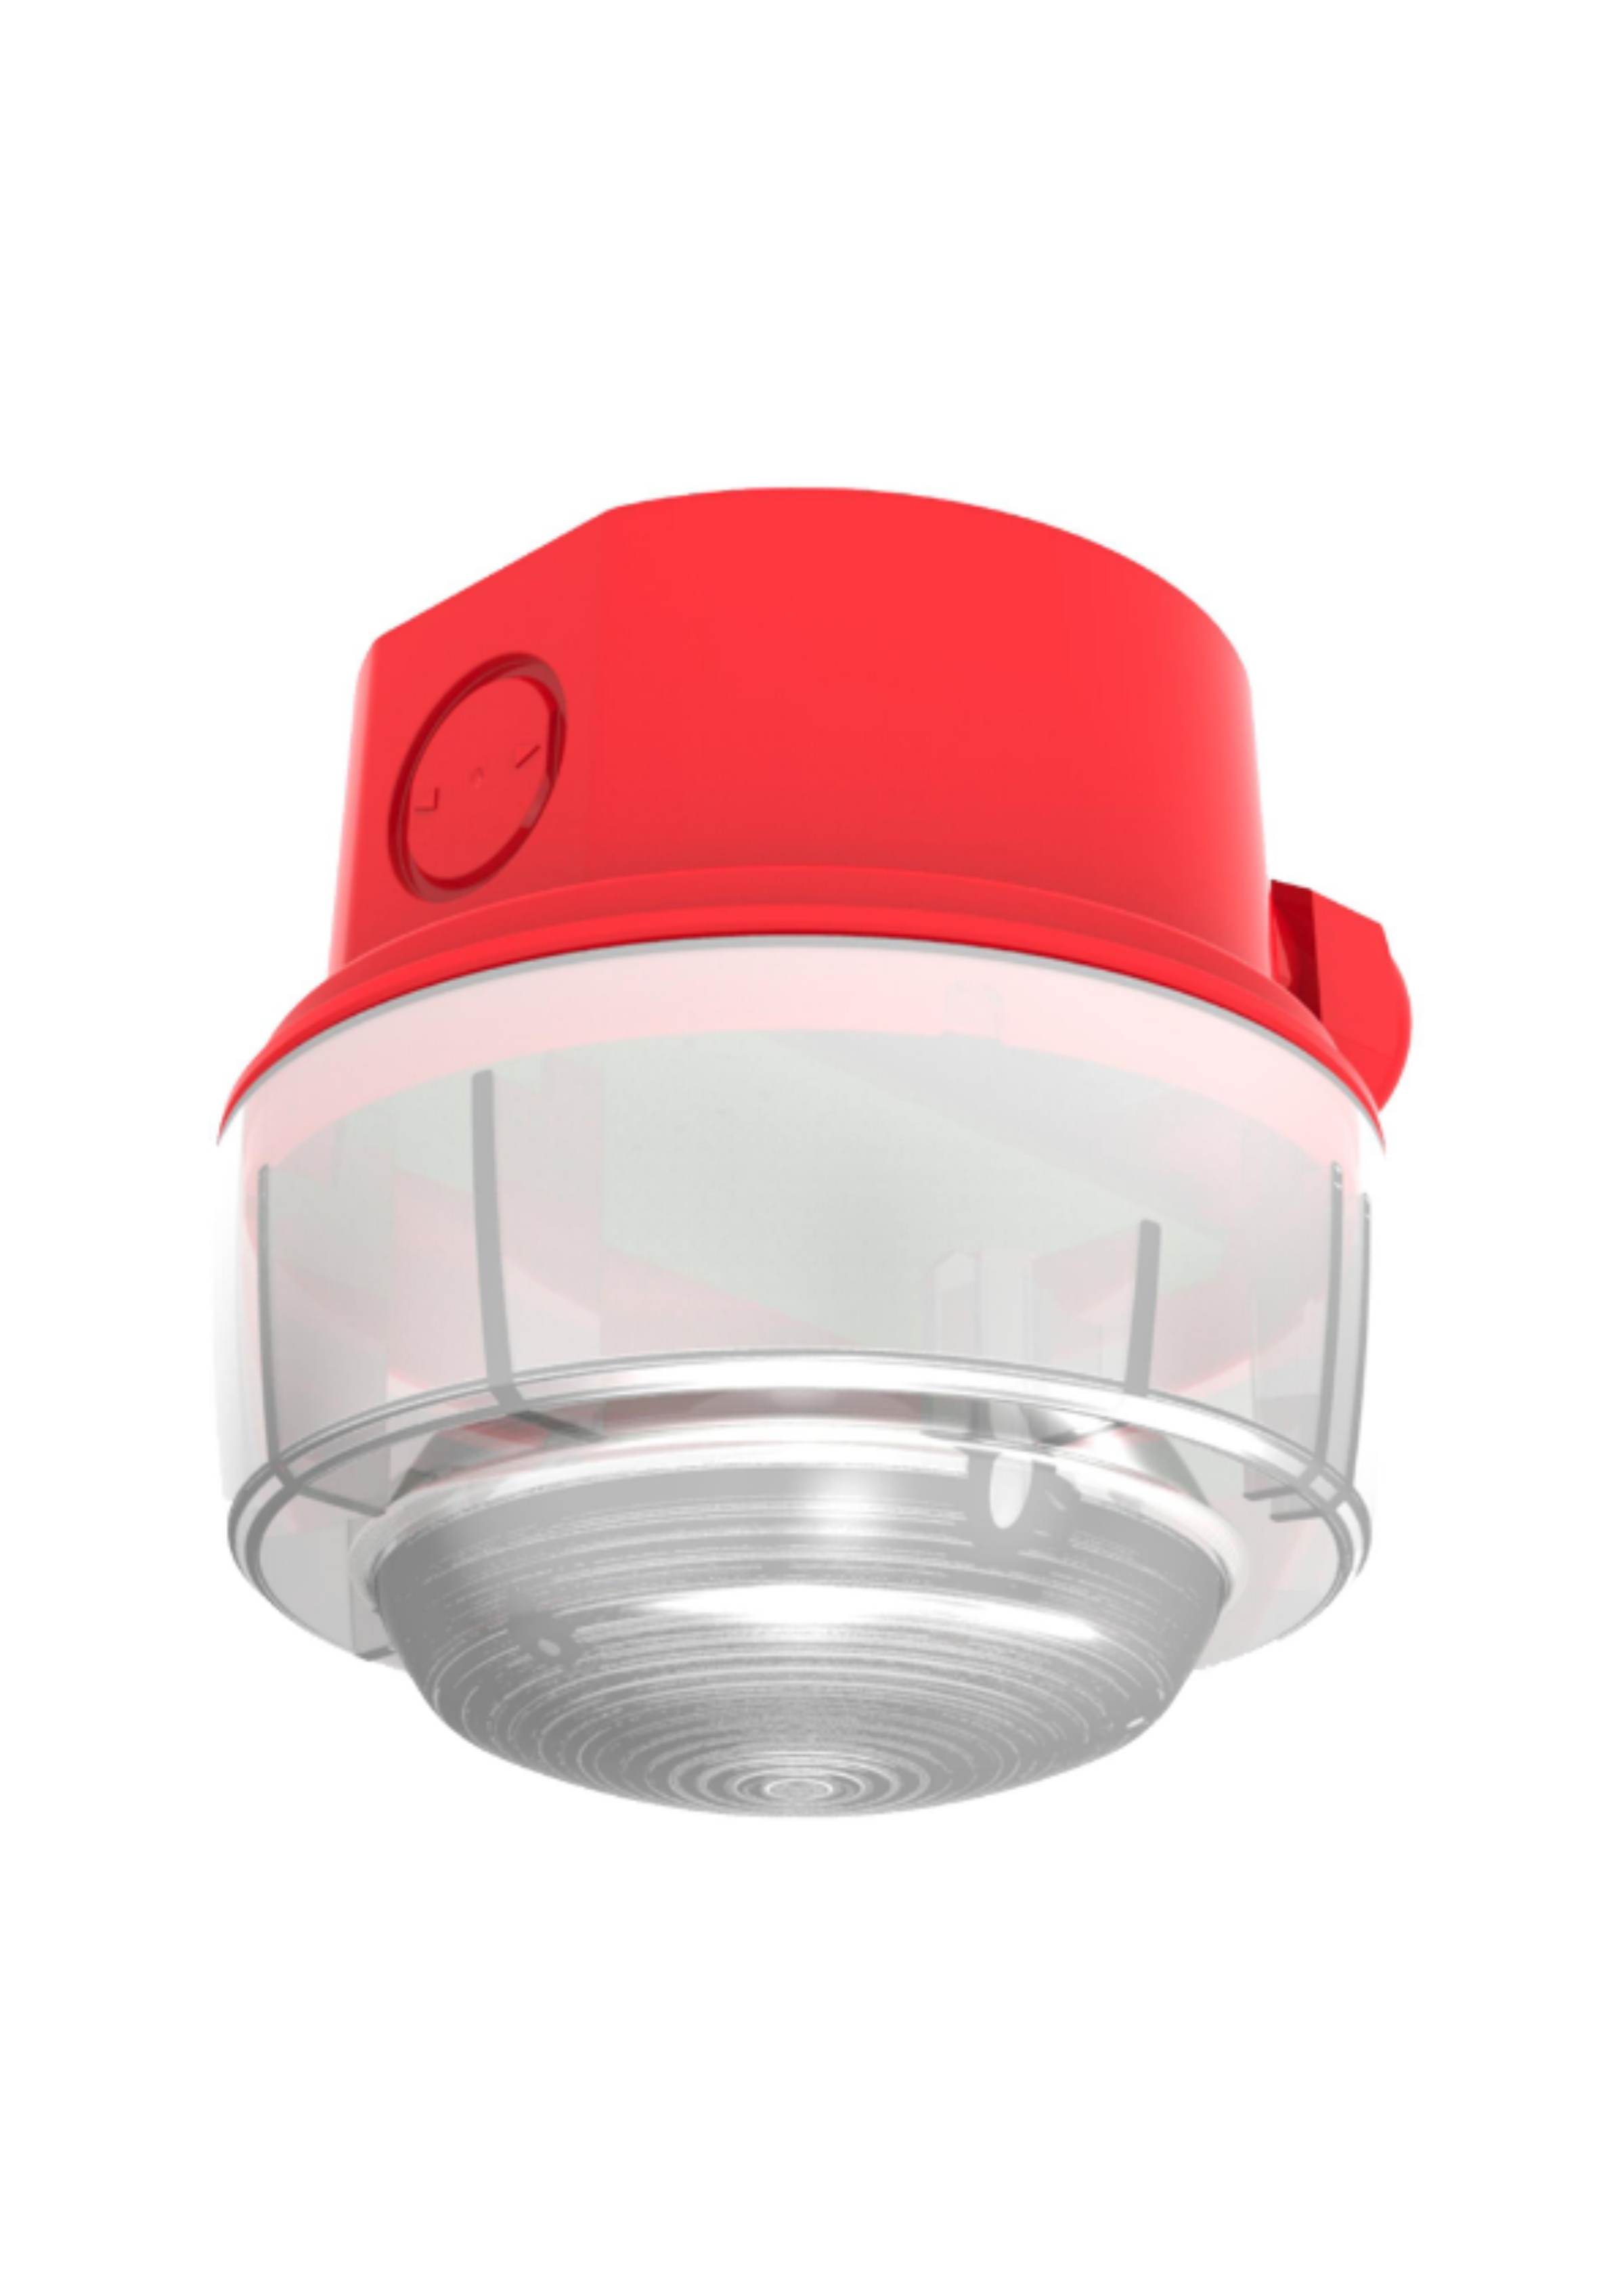 Conventional Beacon - Red case, white LEDs (IP65) ...